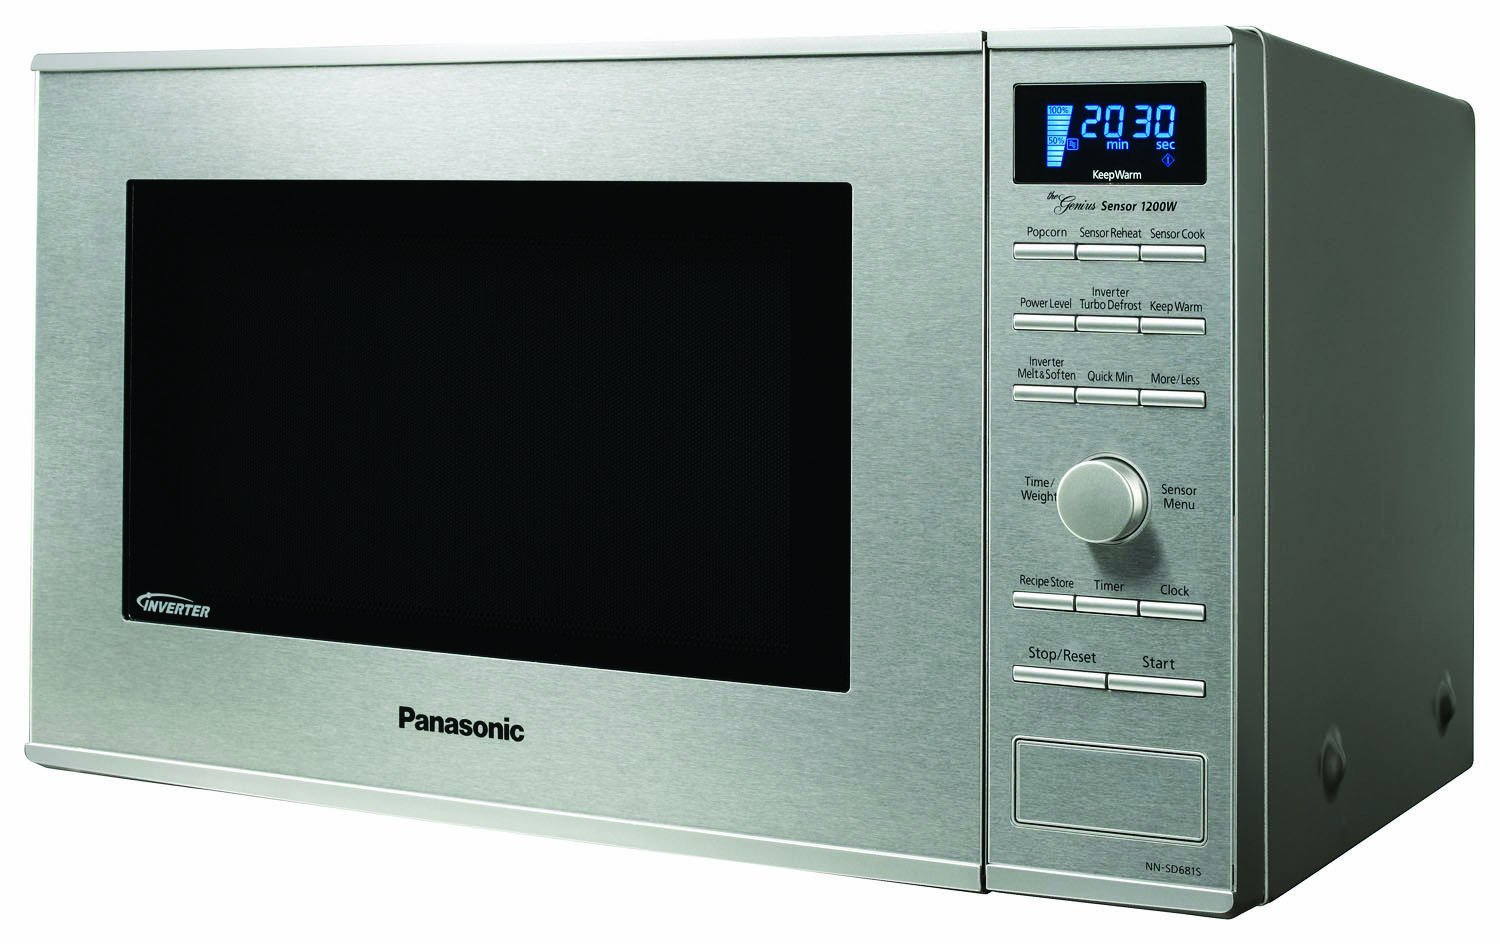 Best Countertop Convection Oven 2015 : panasonic countertop microwave oven top best microwave oven ovens 2013